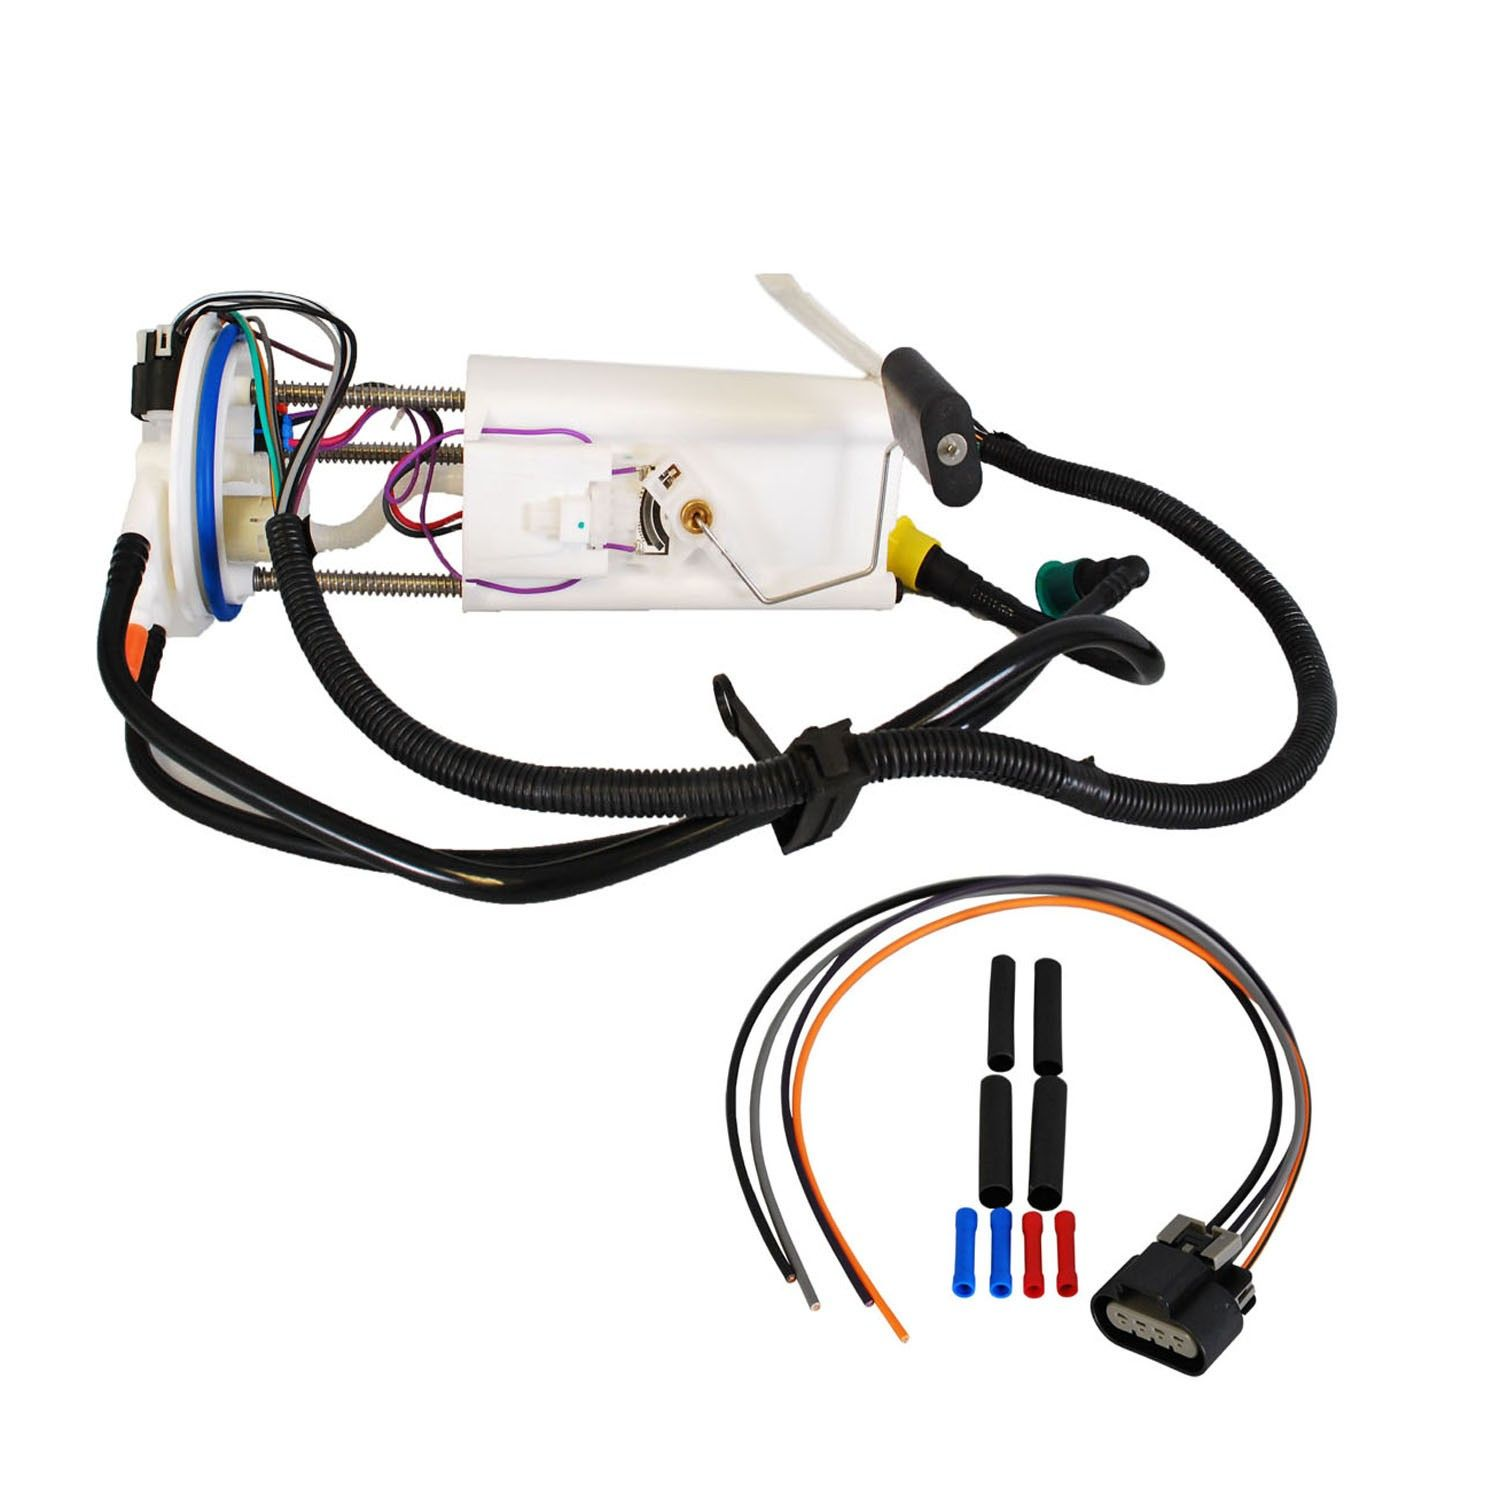 Wiring Harness For 2001 Oldsmobile Alero